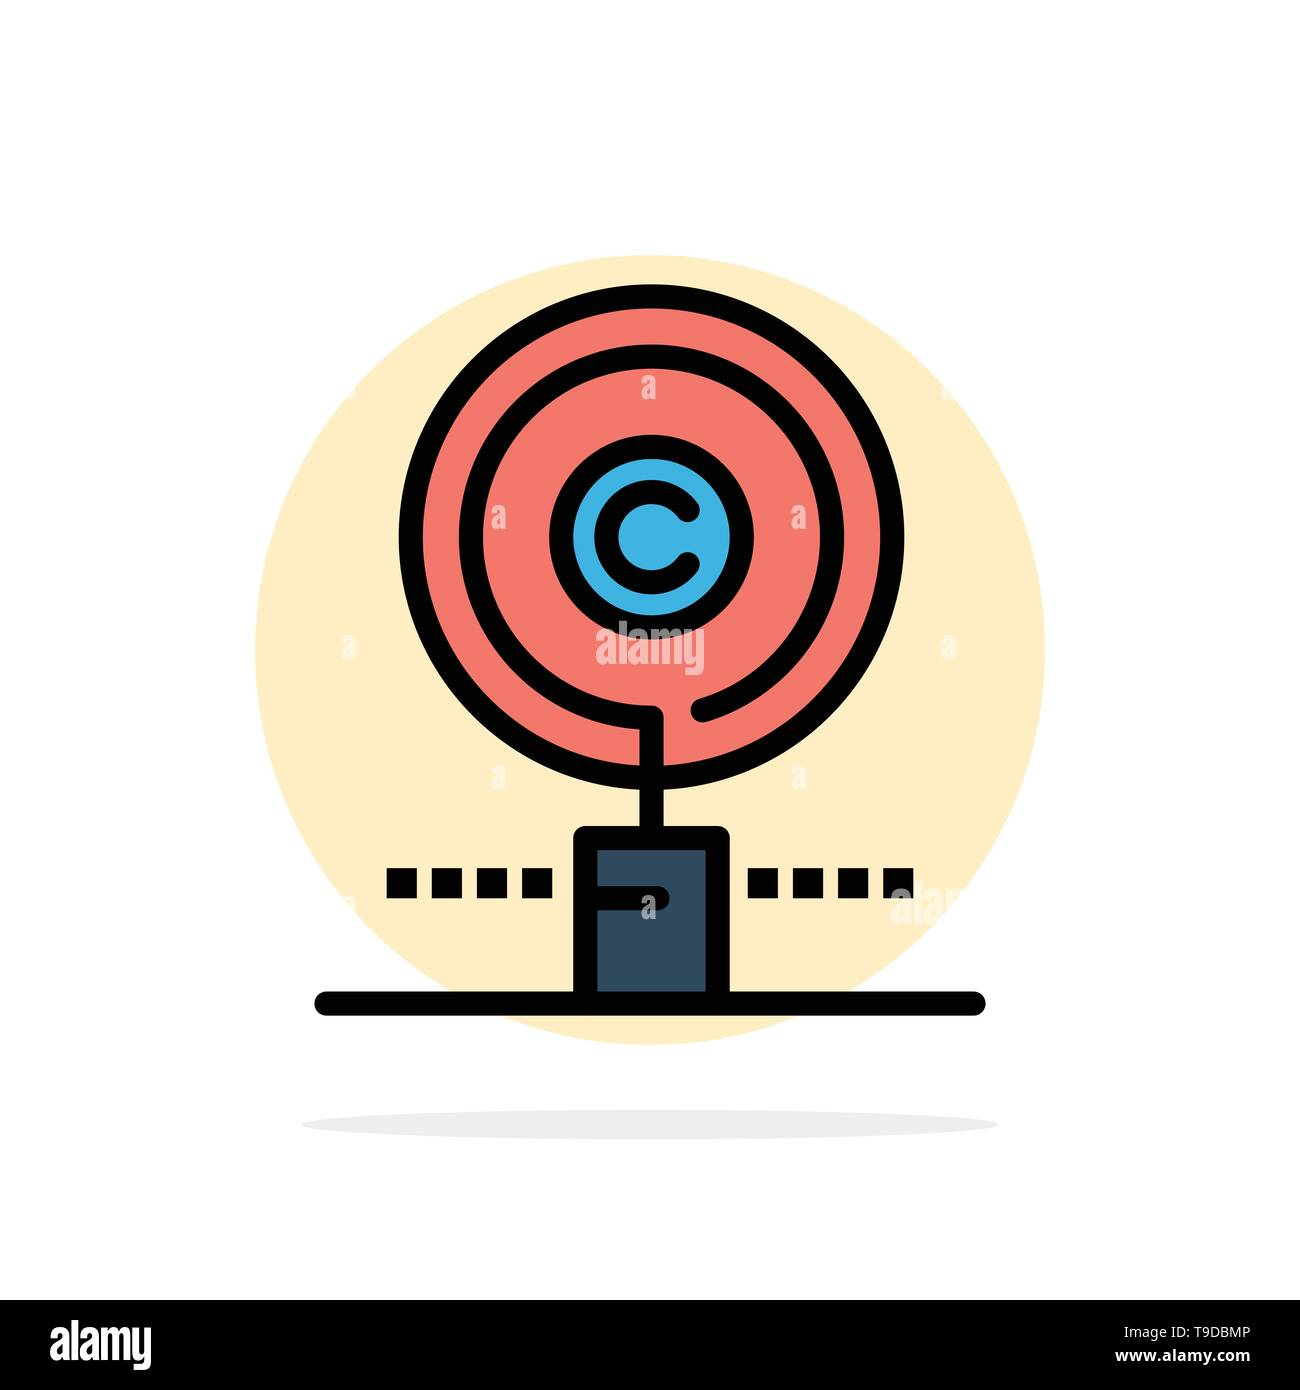 Content, Copyright, Find, Owner, Property Abstract Circle Background Flat color Icon - Stock Image